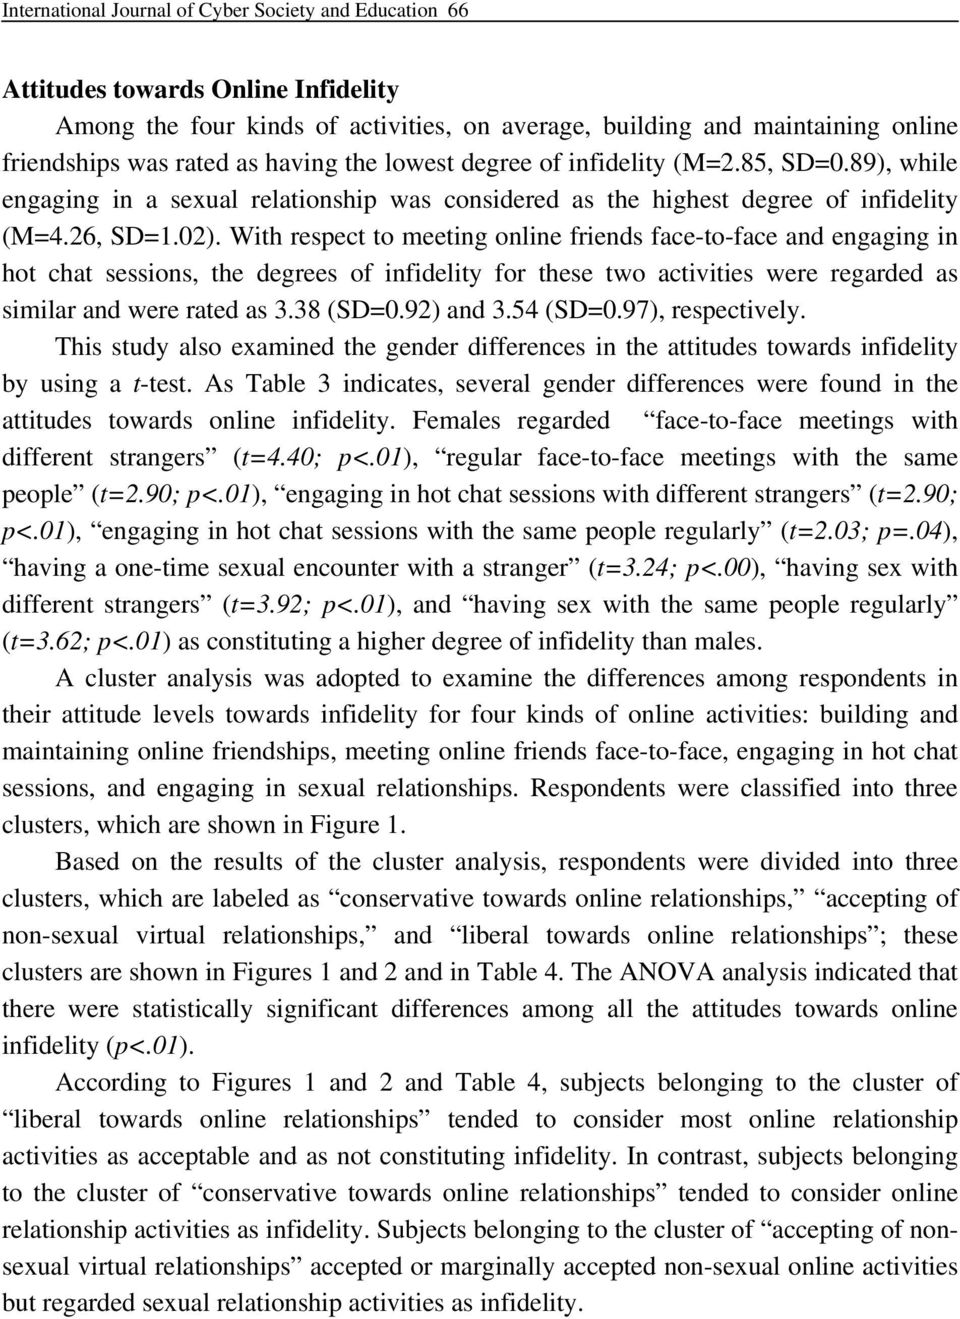 With respect to meeting online friends face-to-face and engaging in hot chat sessions, the degrees of infidelity for these two activities were regarded as similar and were rated as 3.38 (SD=0.